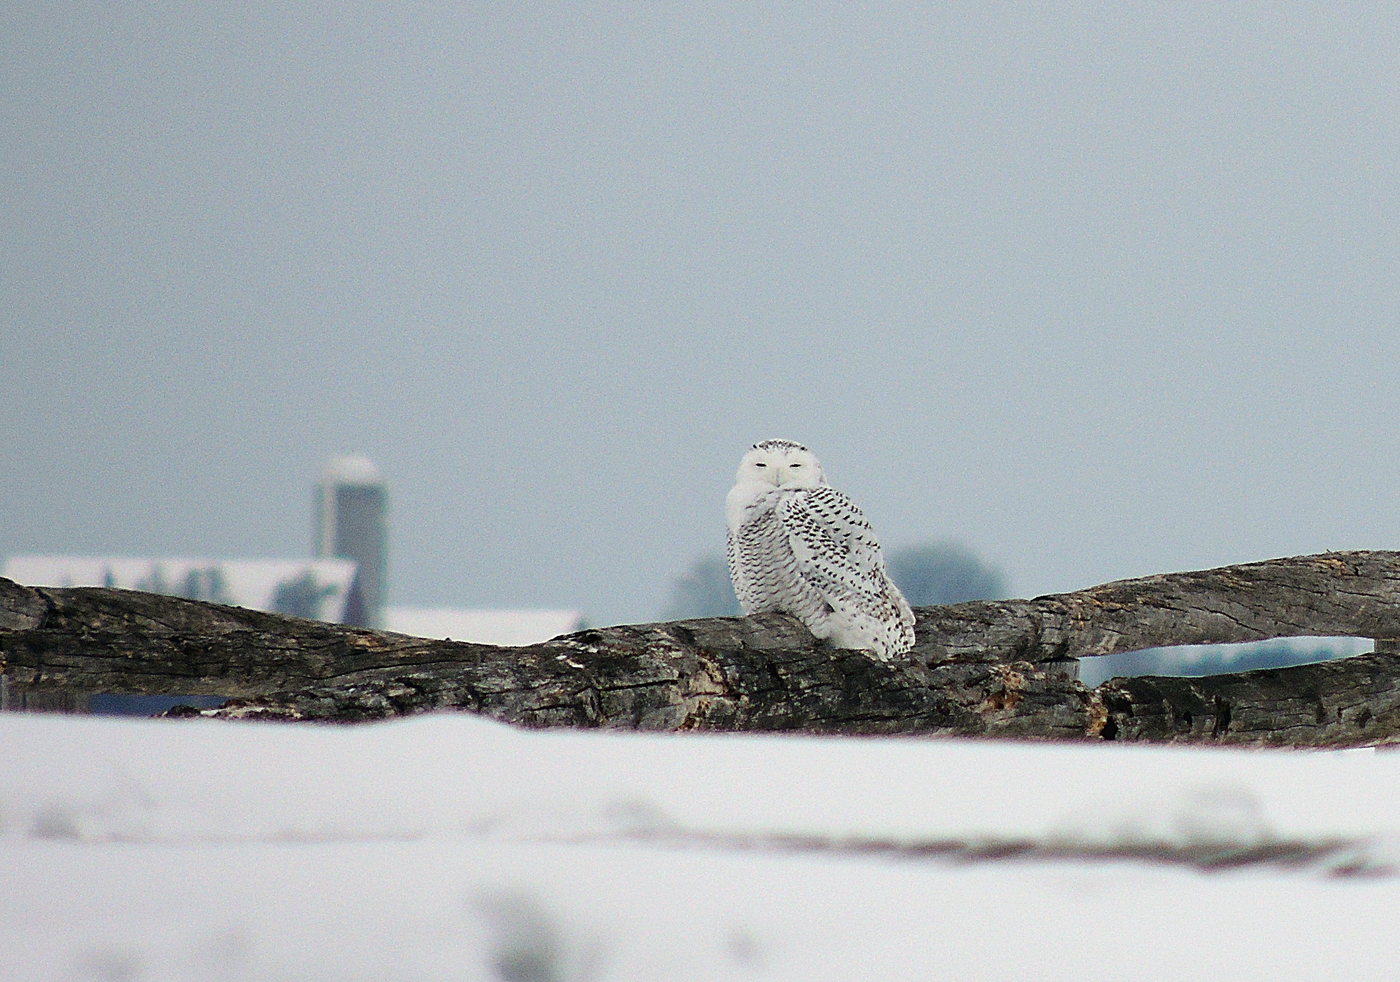 A snowy owl; photo by Andy McGivern